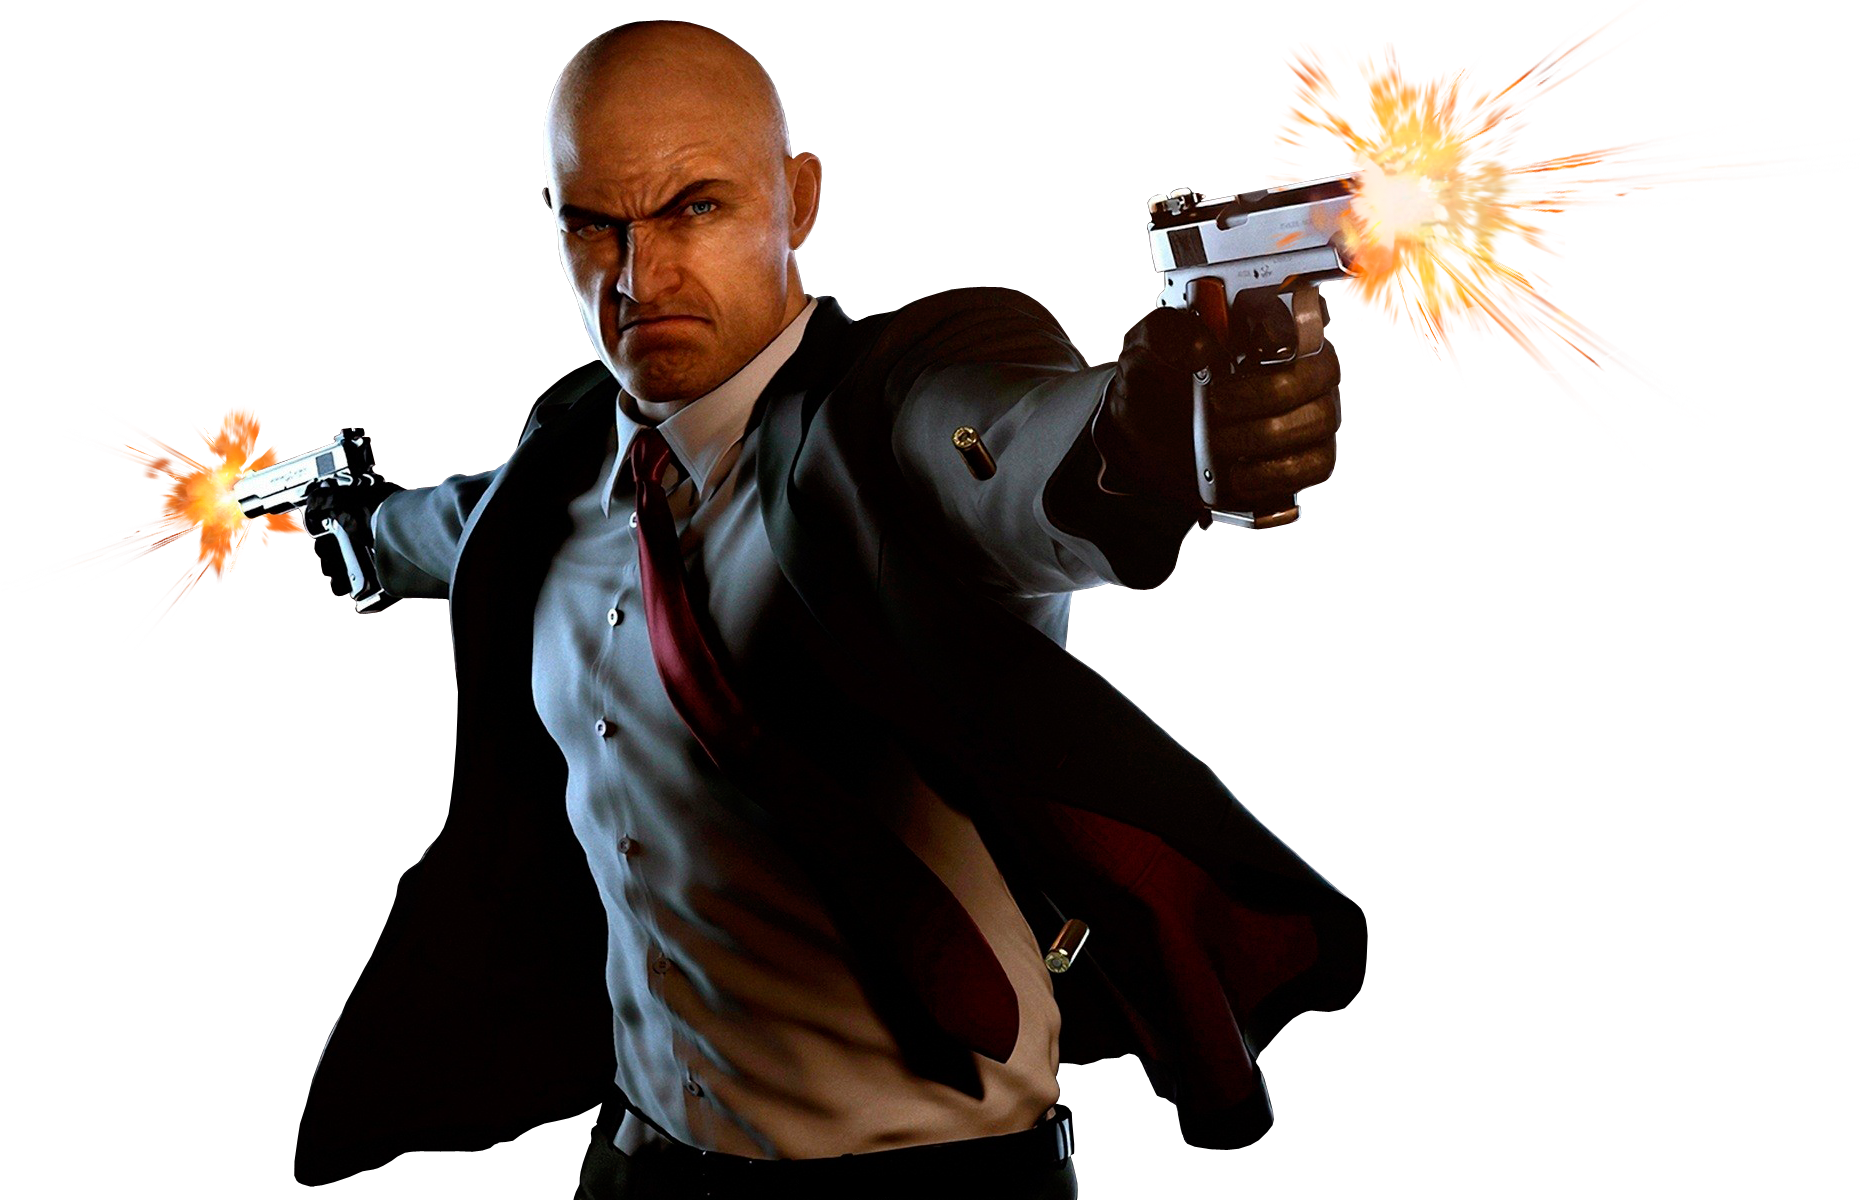 Hitman Absolution - Agent 47 by IvanCEs - Hitman PNG